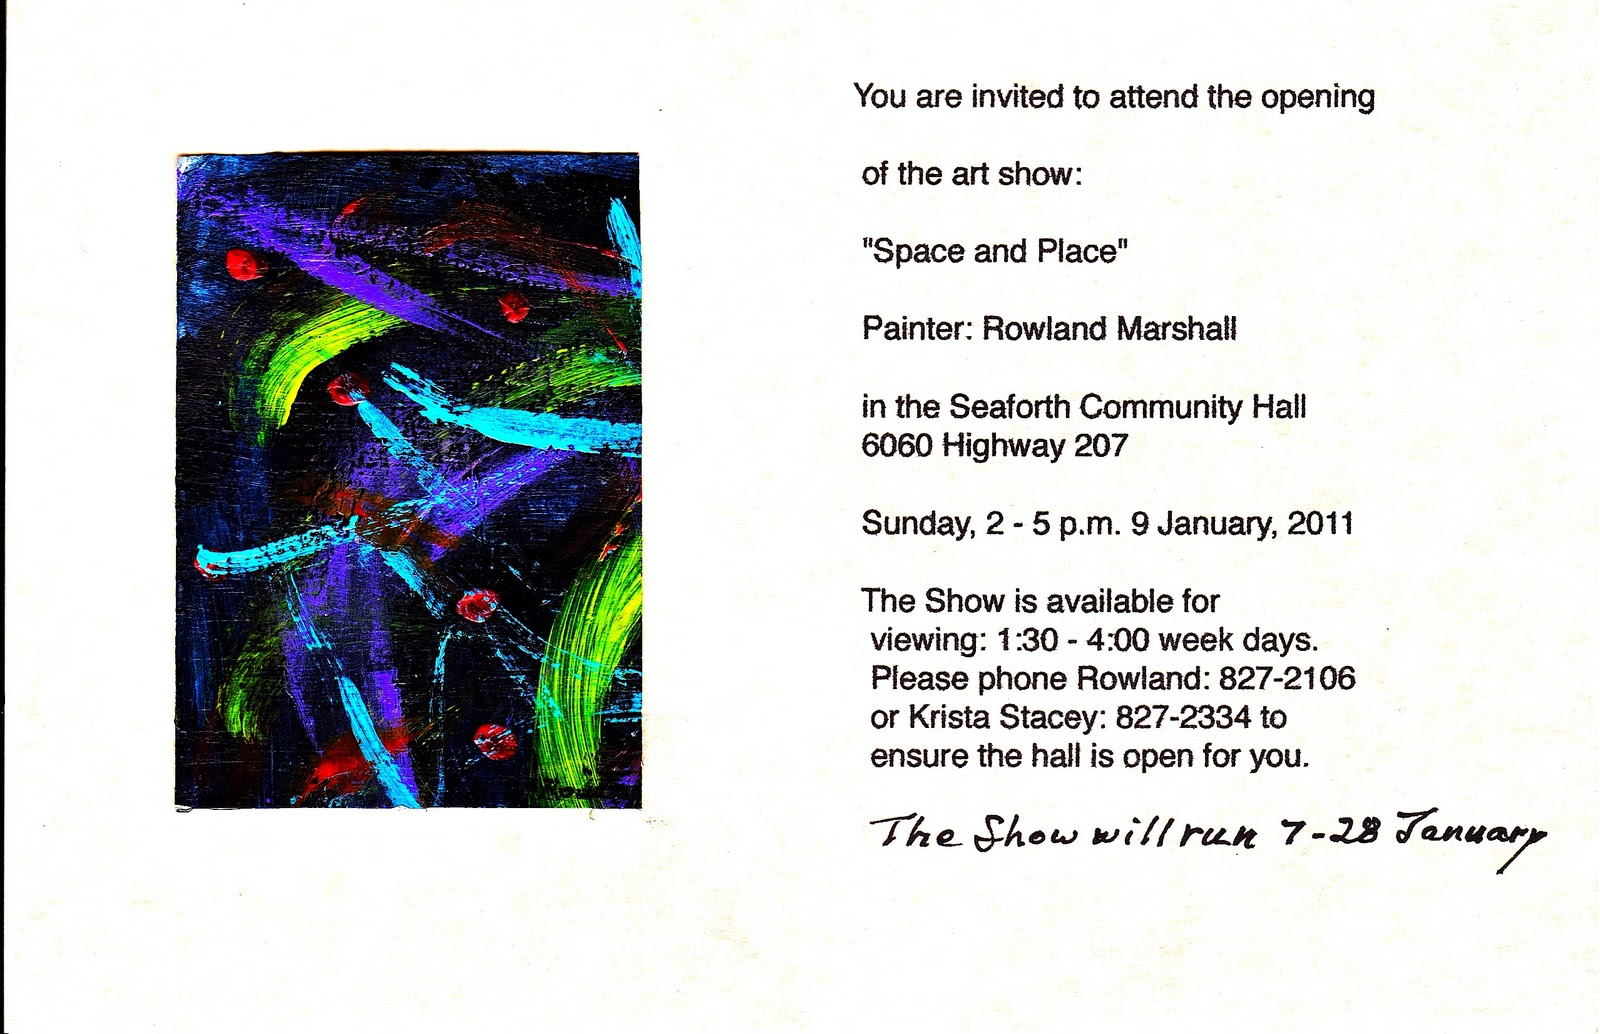 rowland will have his first solo art show in seaforth